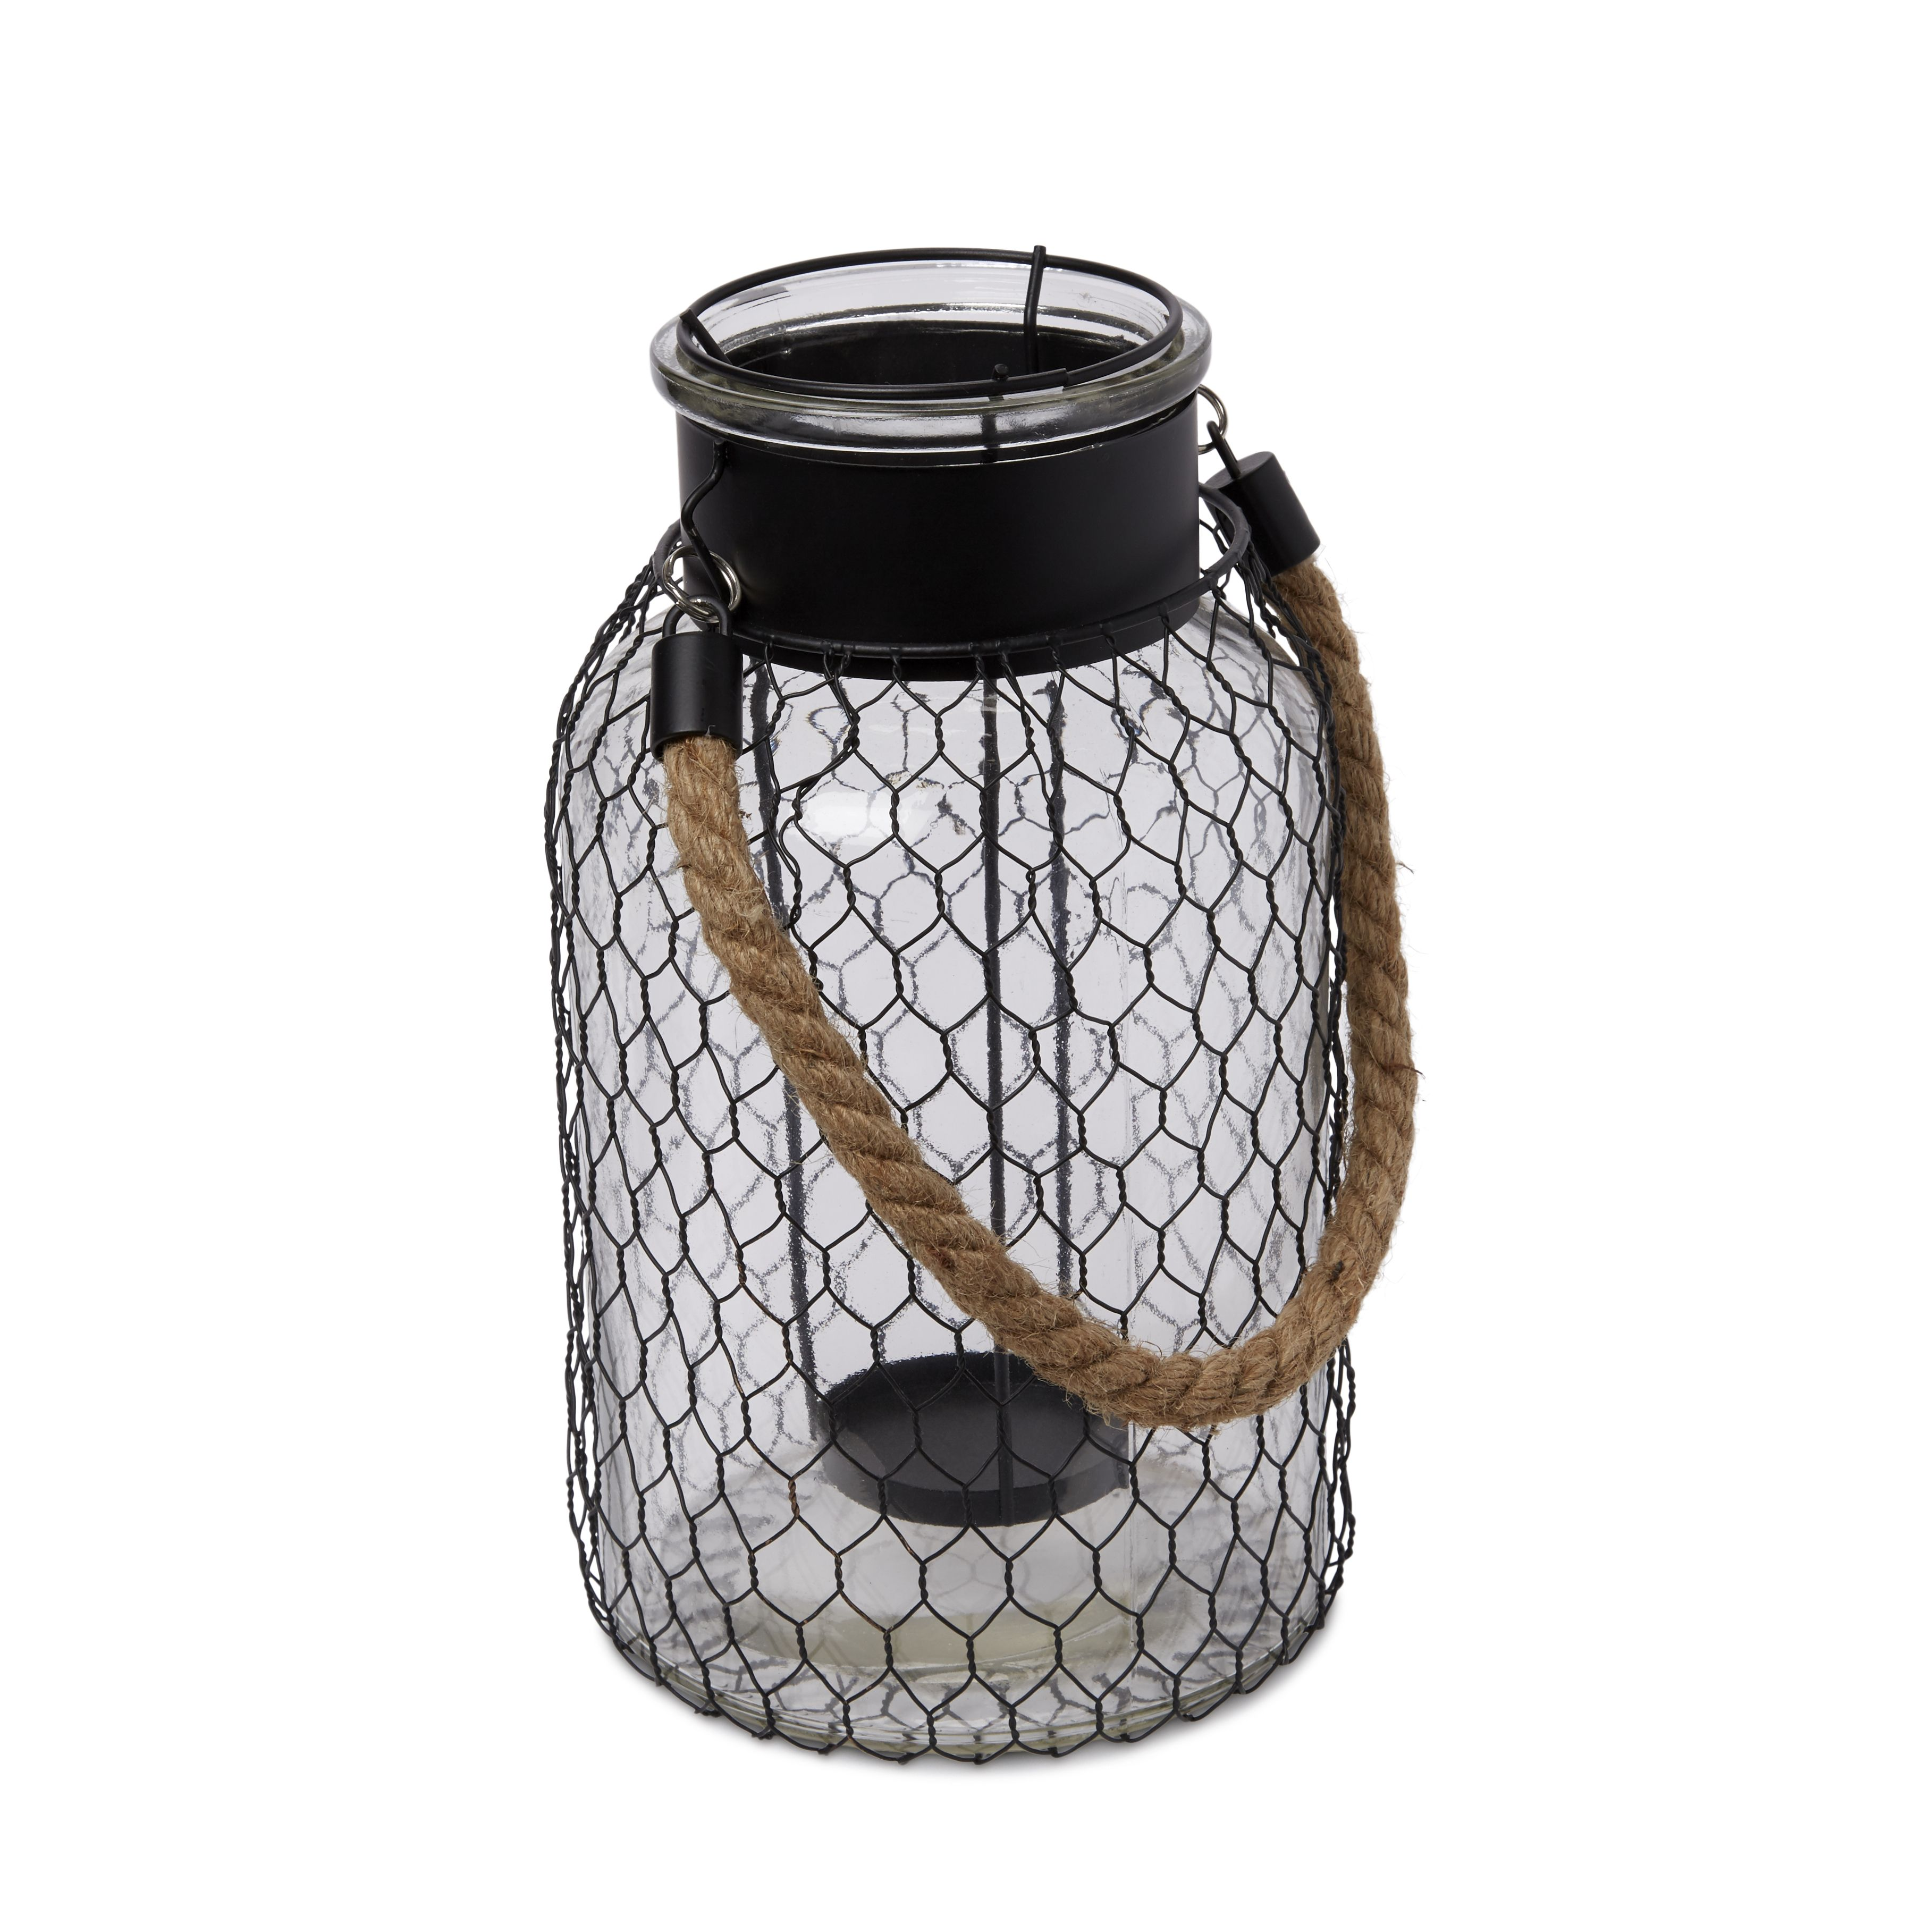 Black Chicken Wire Glass & Metal Candle Holder | Departments | DIY ...